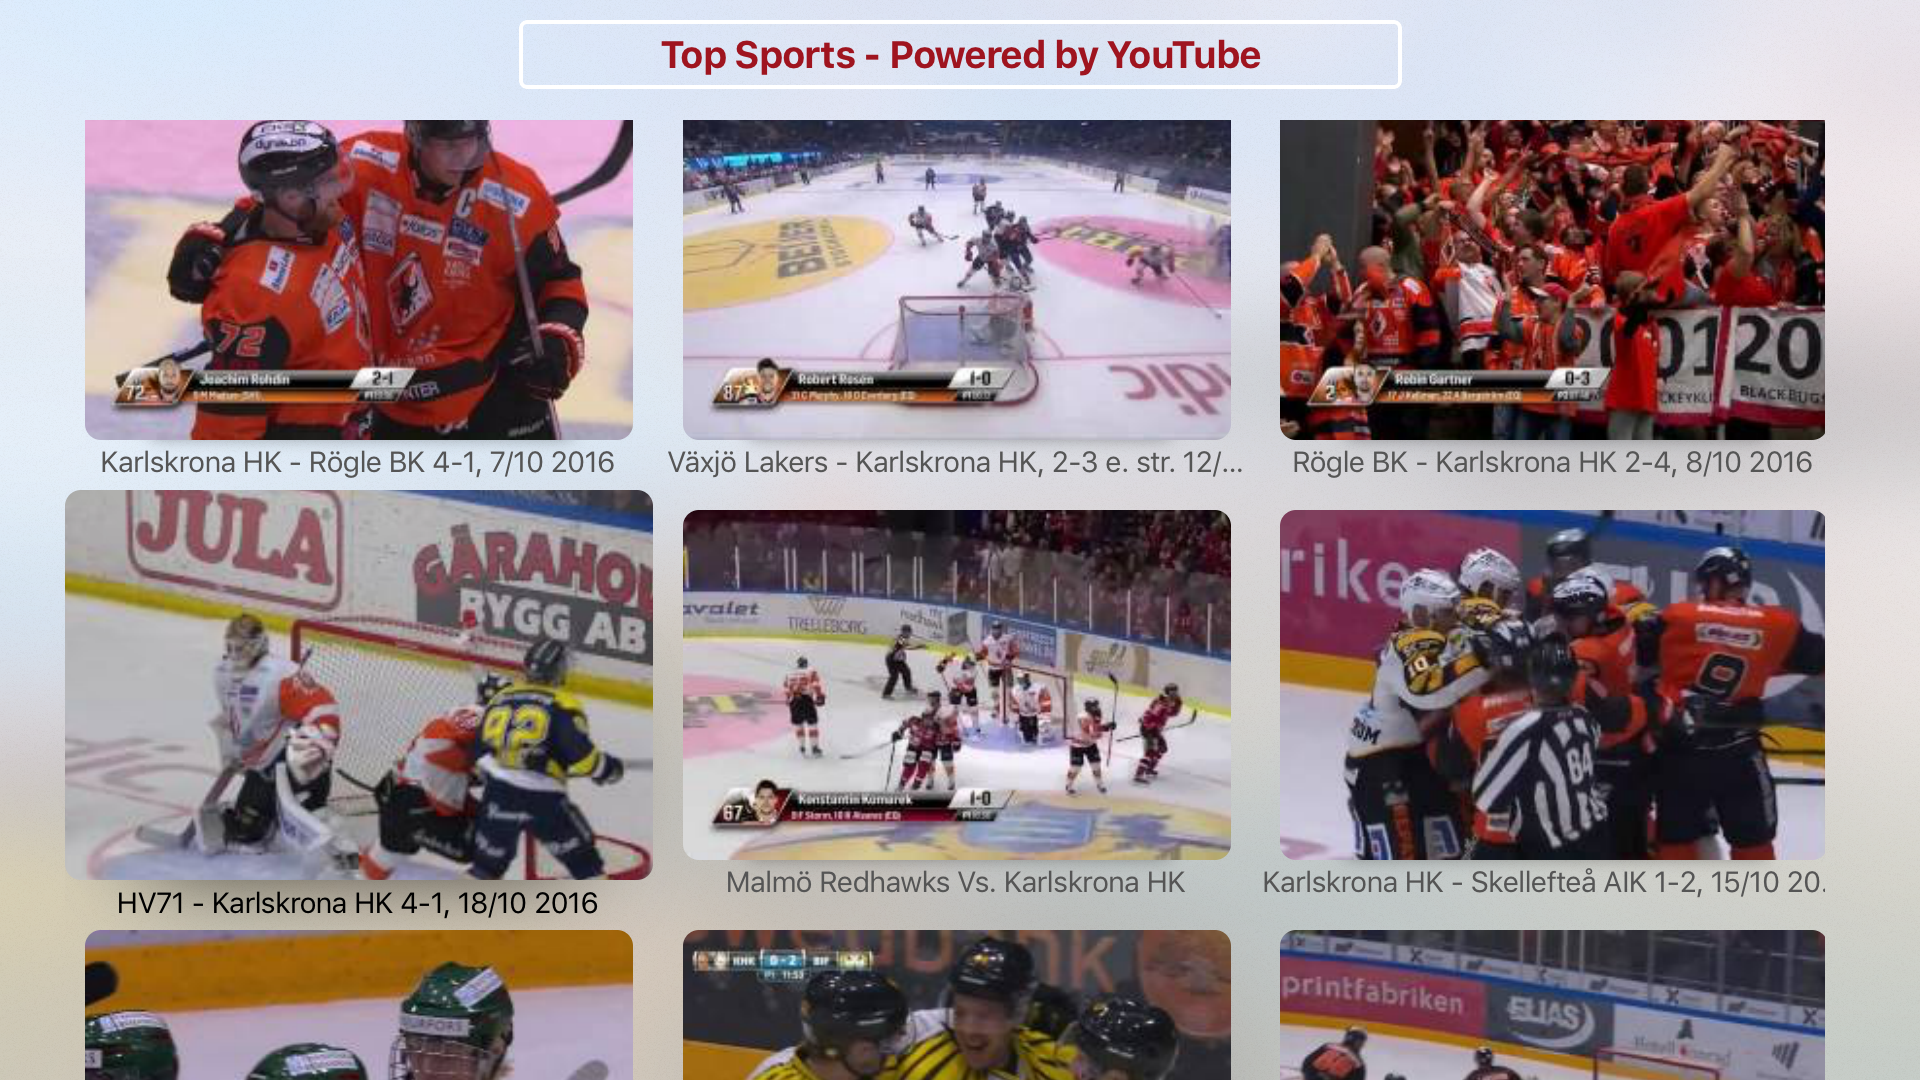 Sports Latest & Highlights - Powered by YouTube screenshot 5